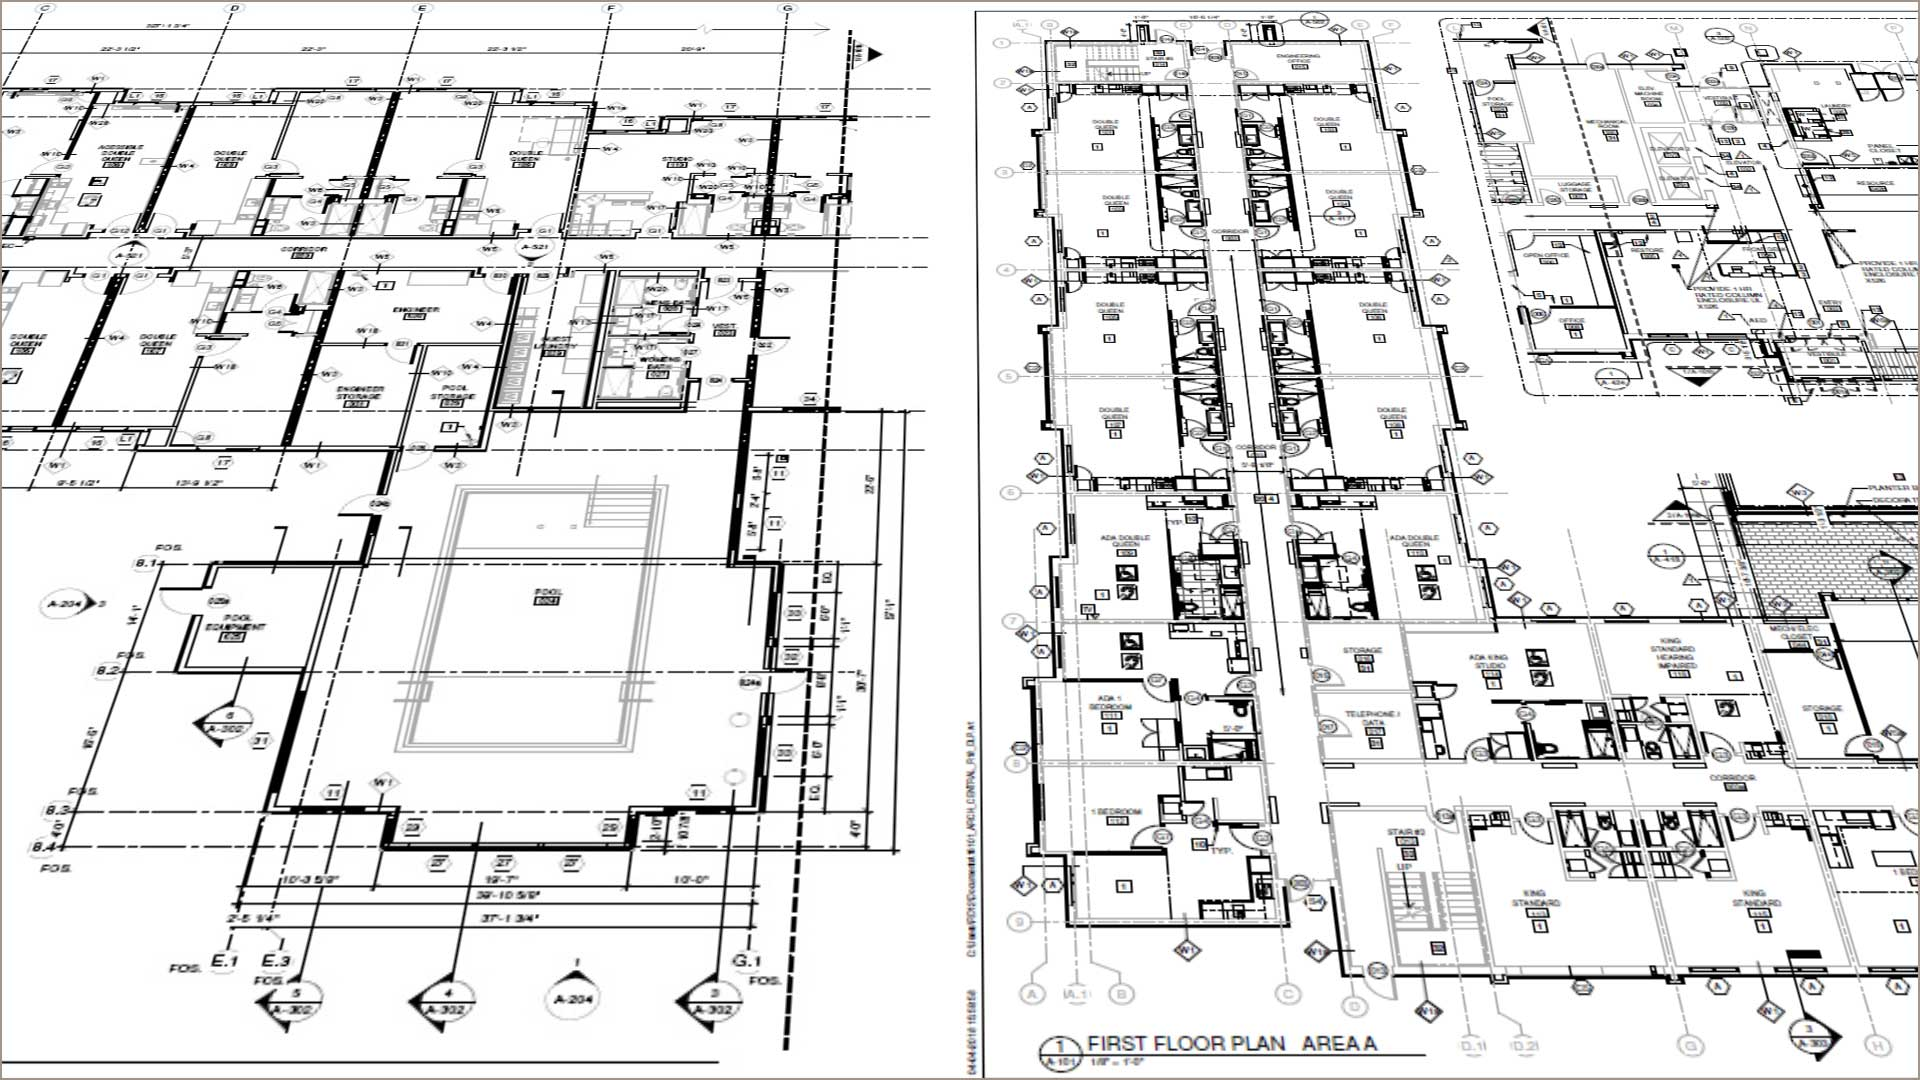 Architectural Design- Design Documents- Architectural modeling and BIM Implementation during hotel construction project